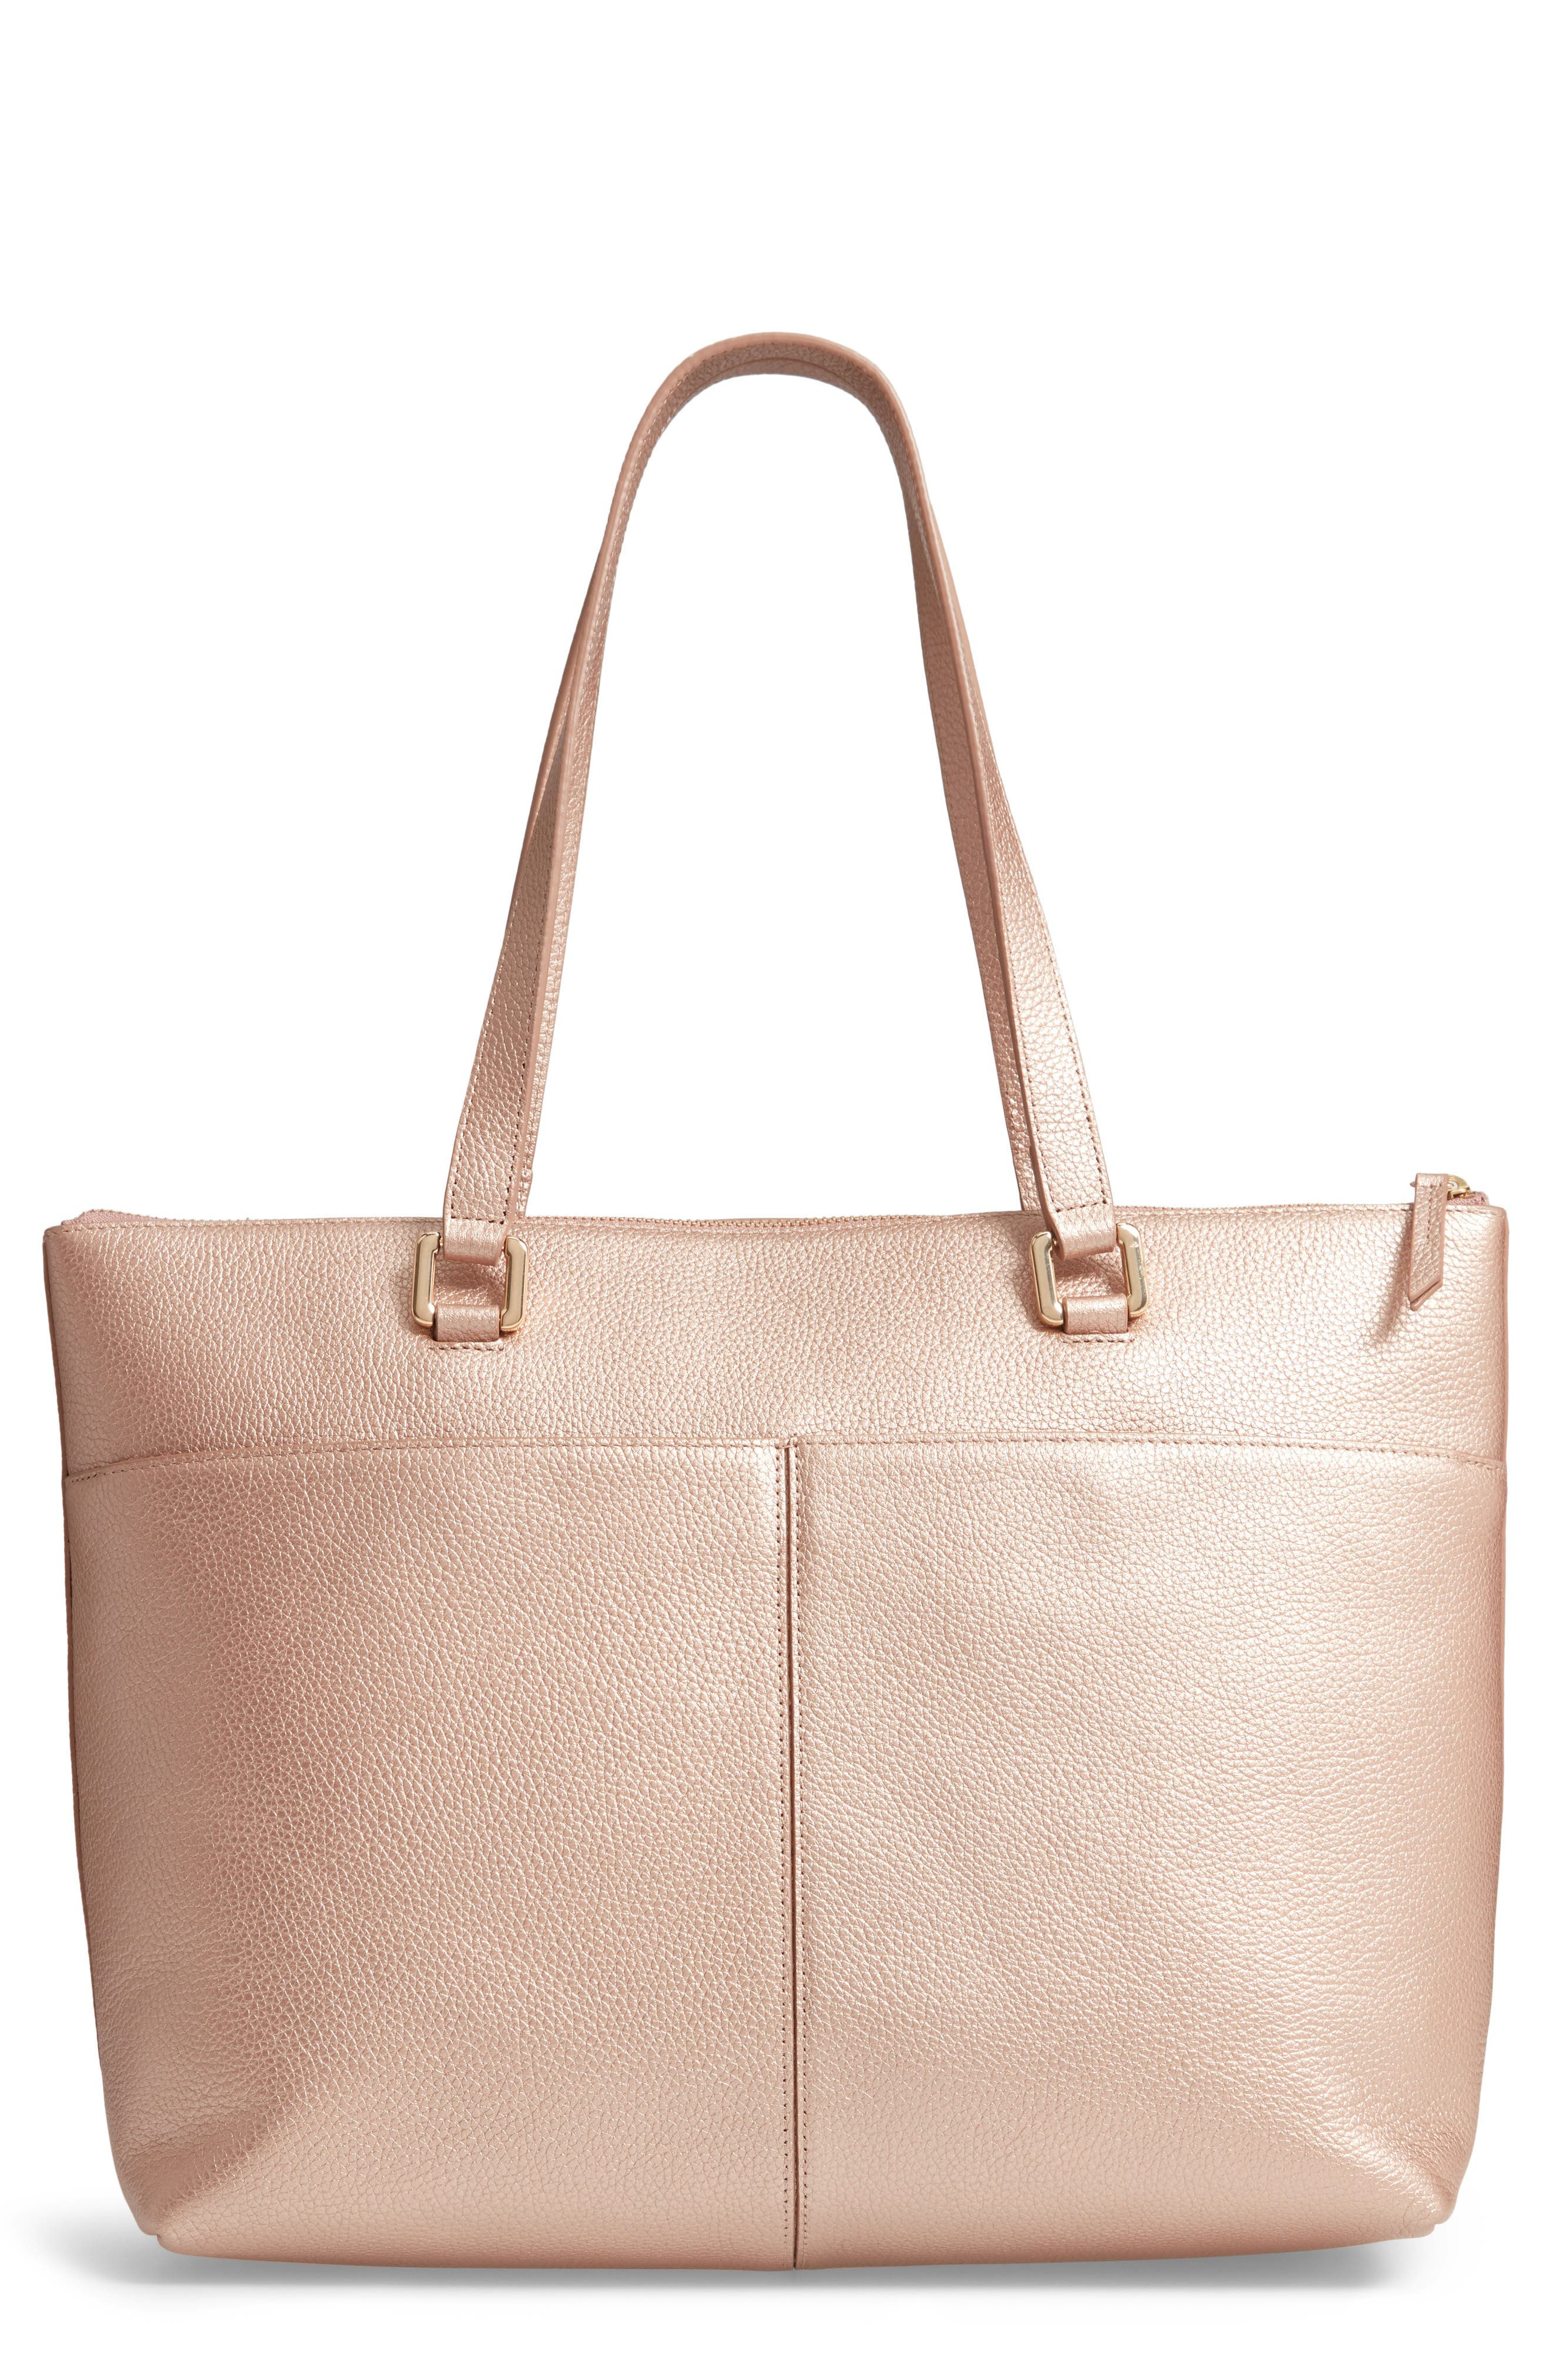 Lexa Pebbled Leather Tote, Main, color, ROSE GOLD